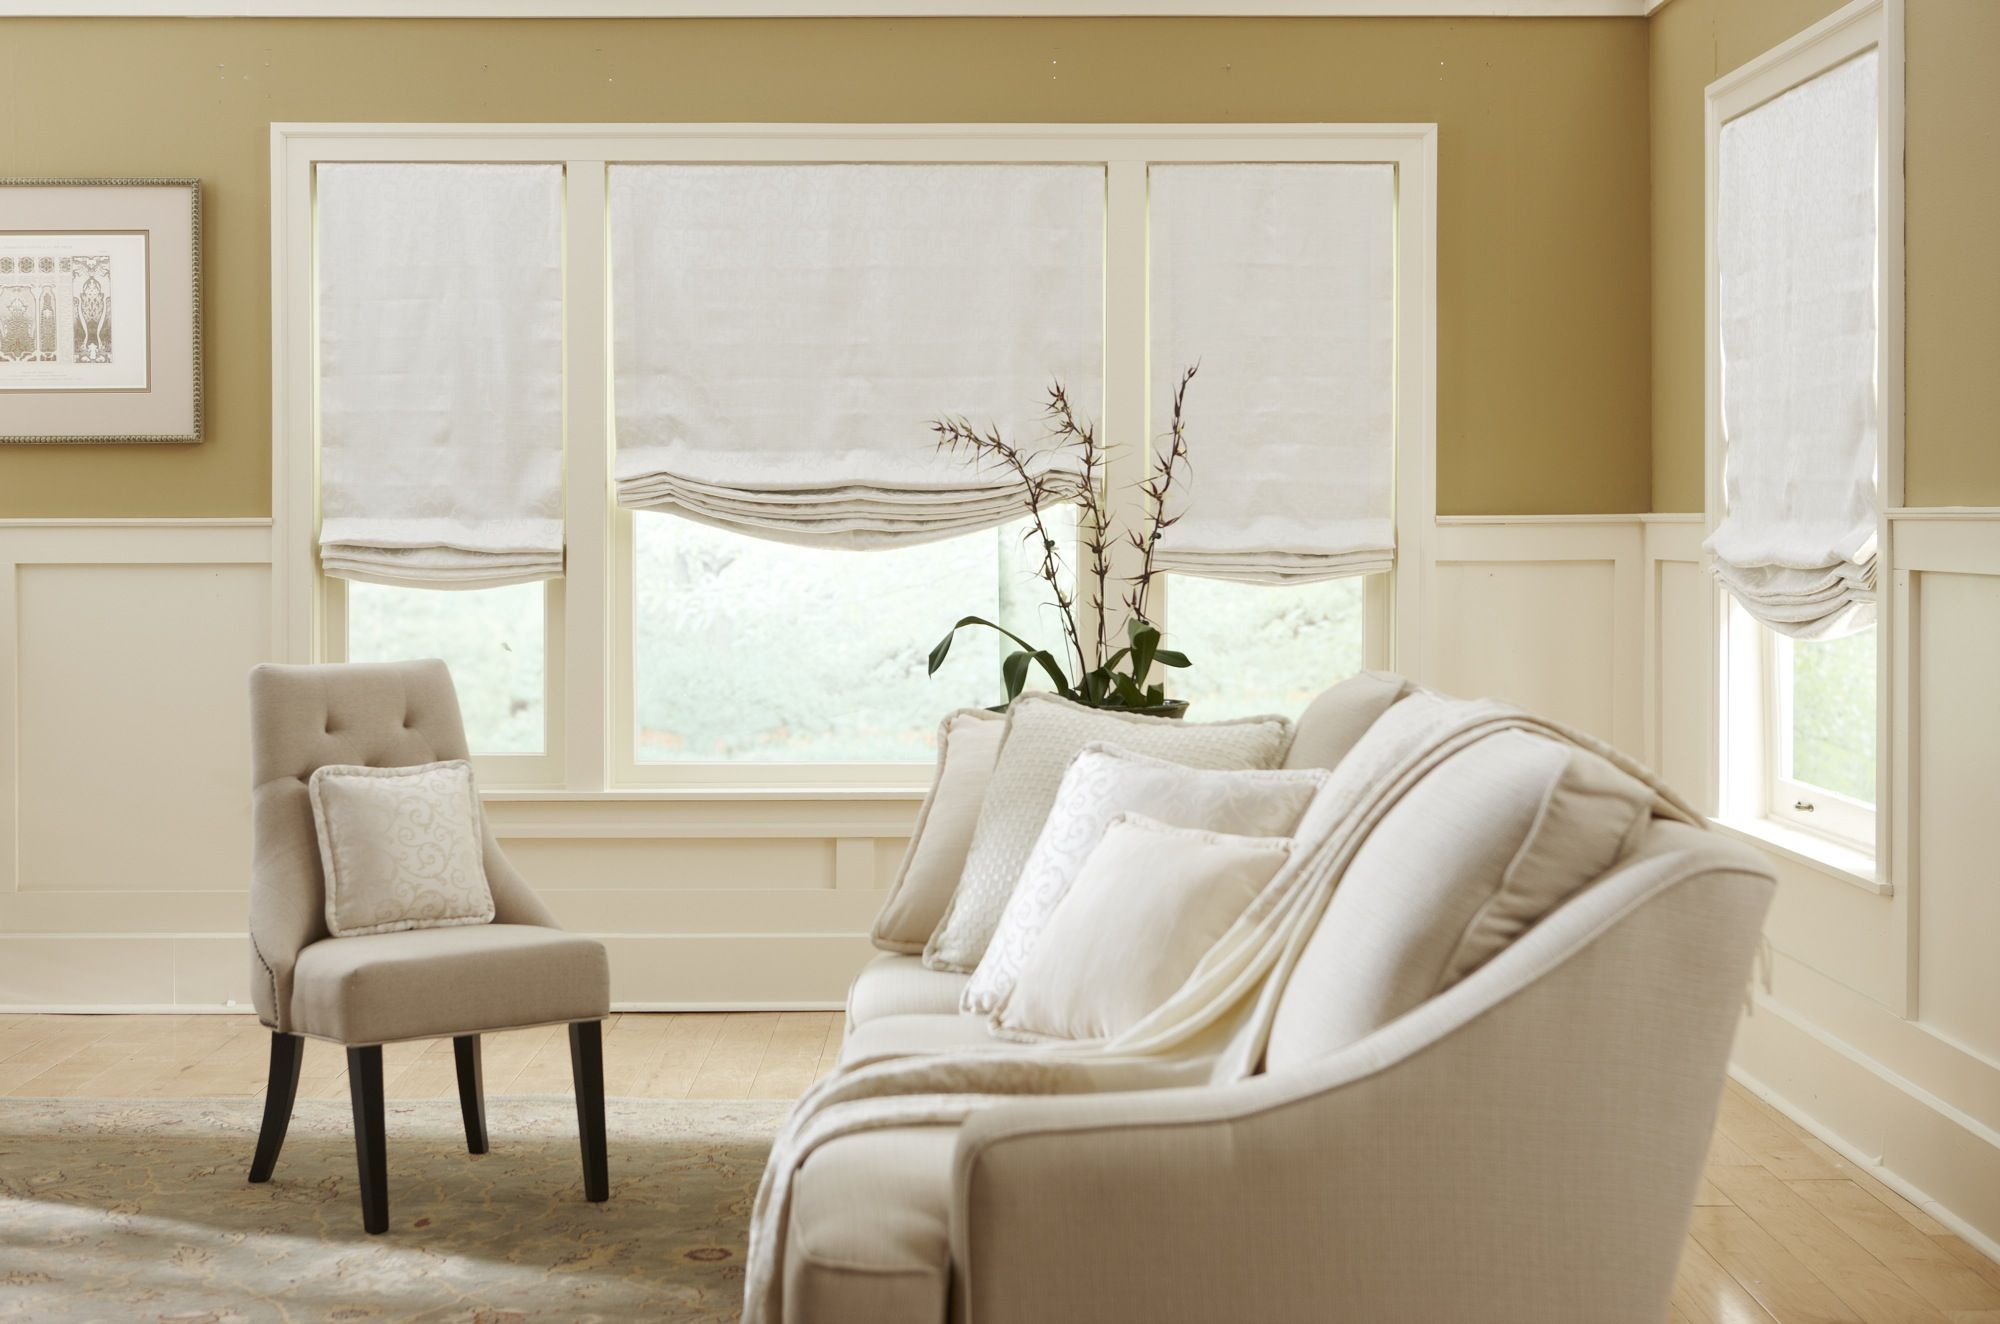 soft roman shades | home ideas | Pinterest | Bedroom sitting areas ...